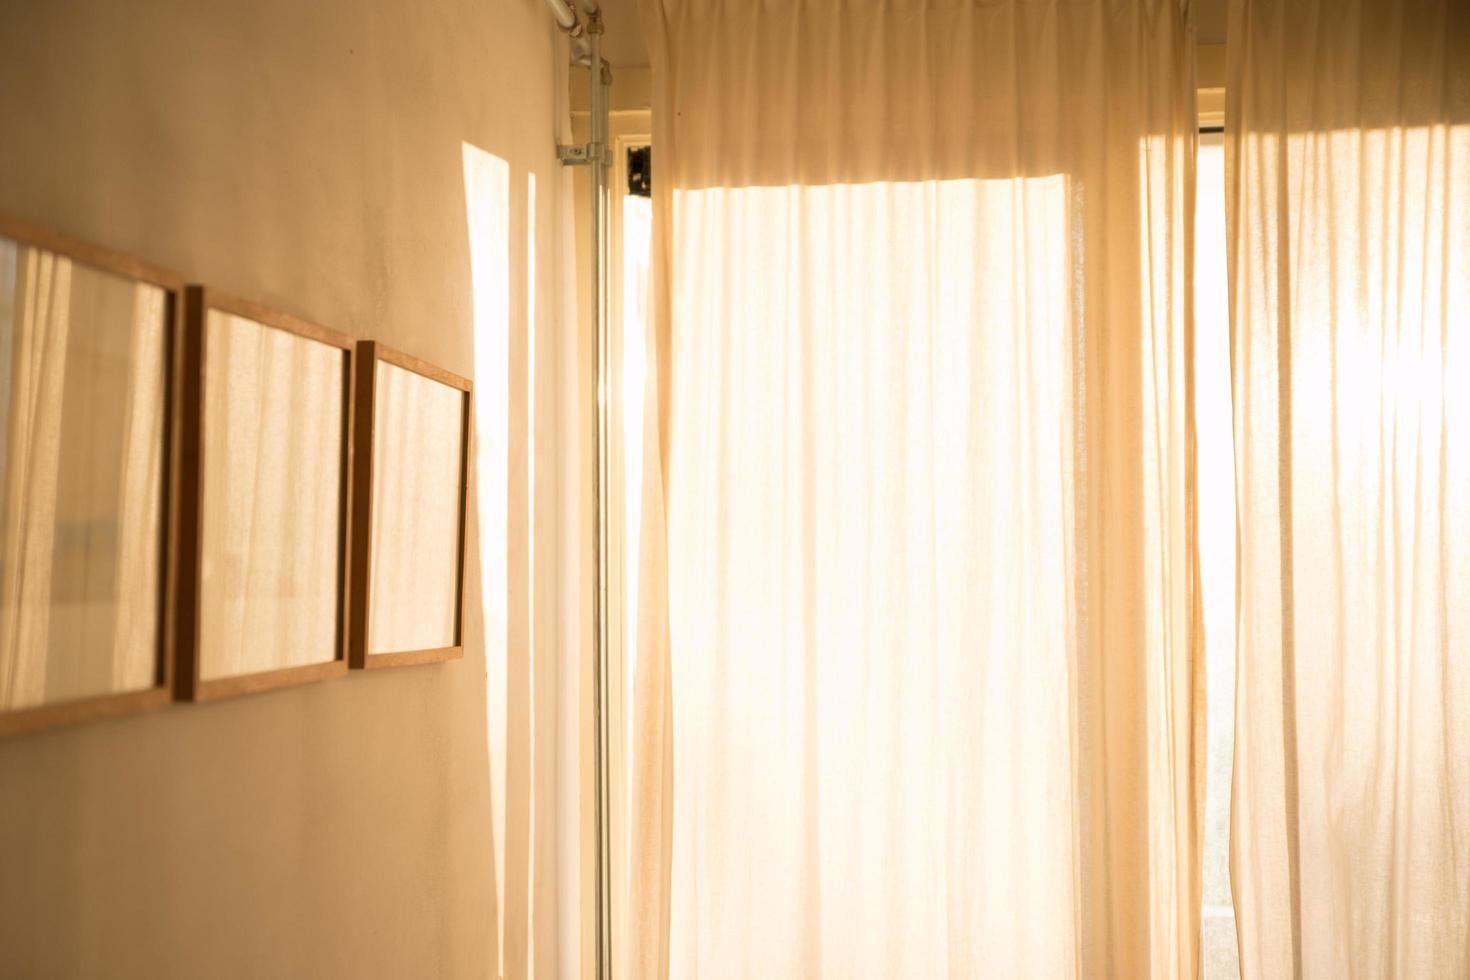 Room with picture frames and window curtains photo